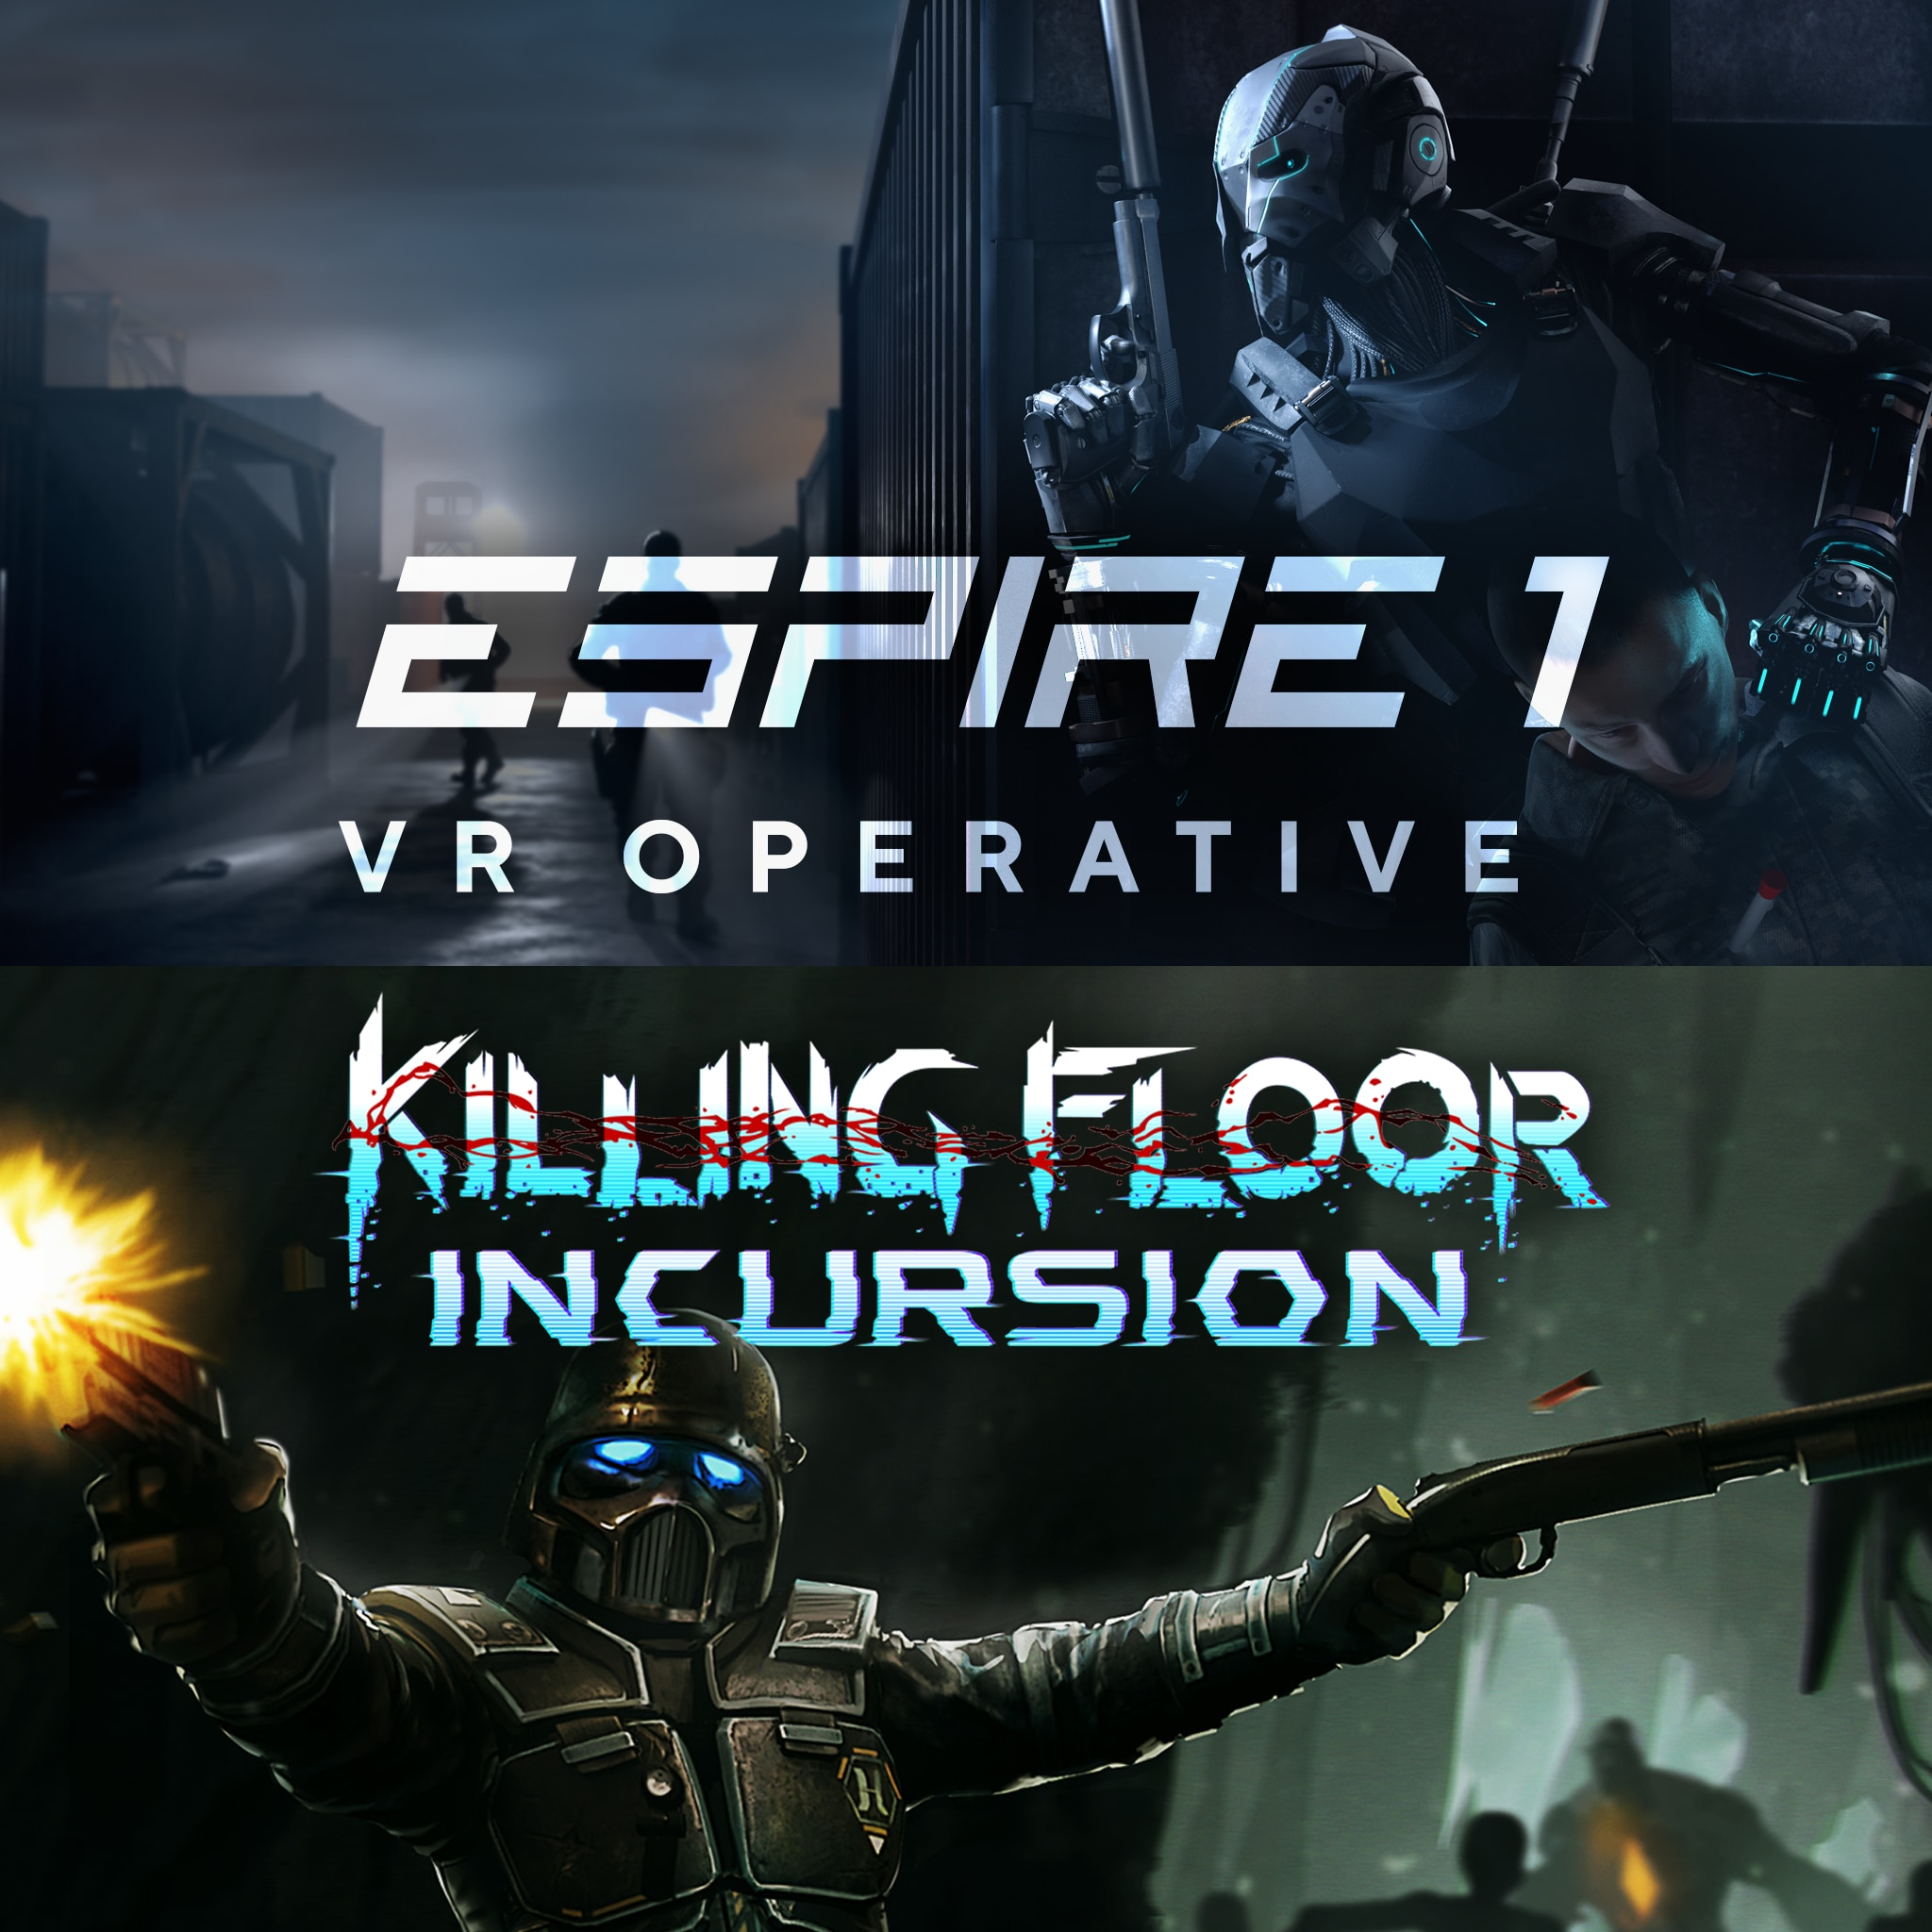 Espire 1: VR Operative & Killing Floor: Incursion VR Bundle